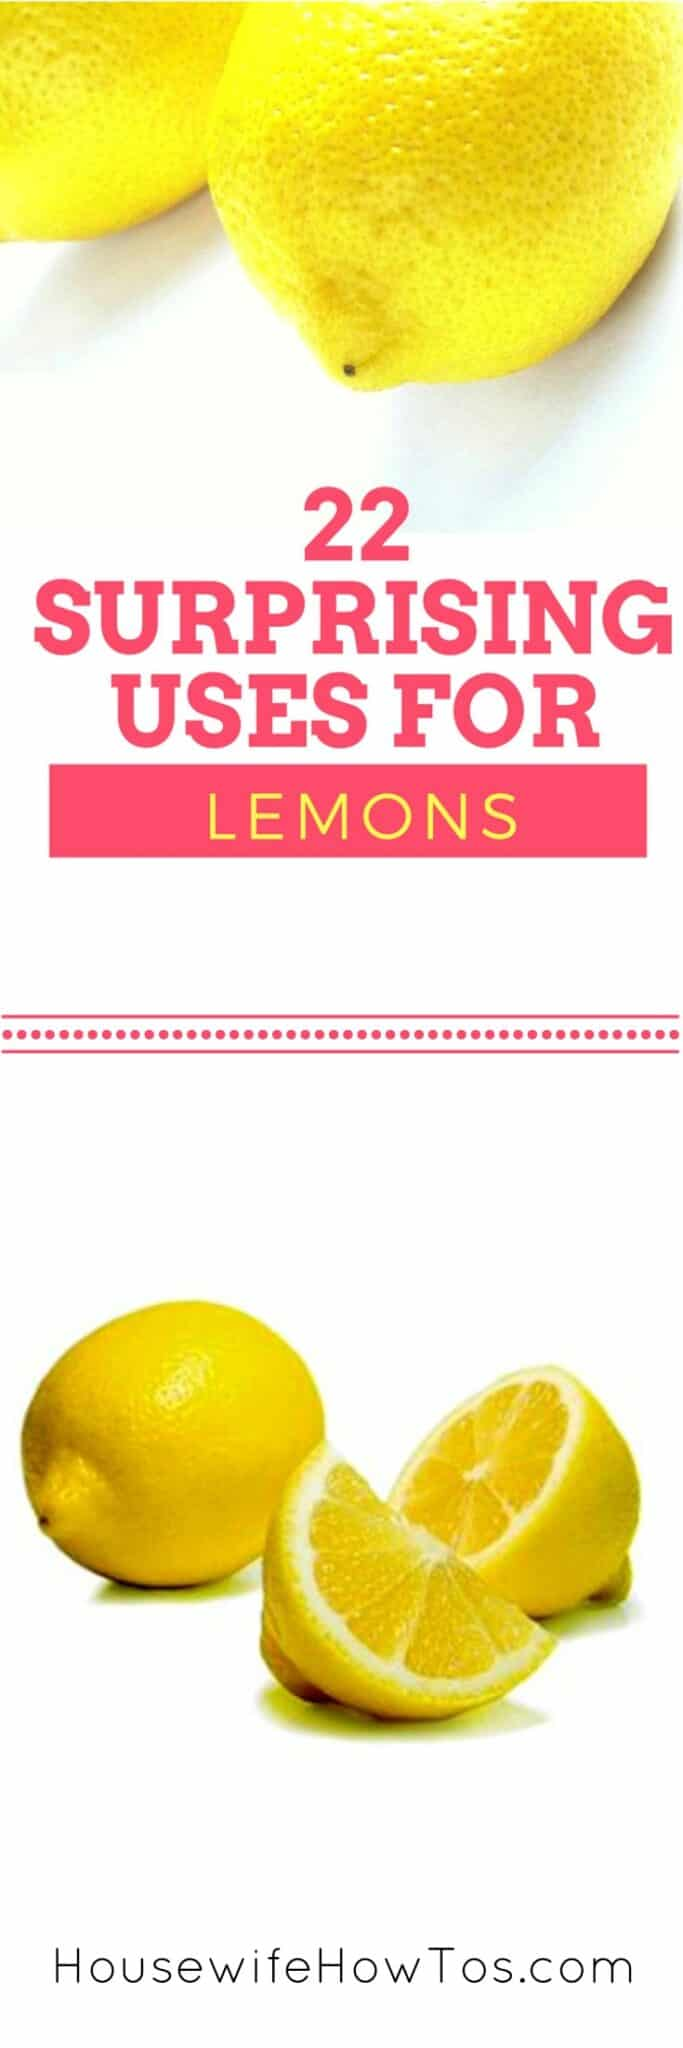 22 Surprising Uses For Lemons - These are so clever! | via HousewifeHowTos.com